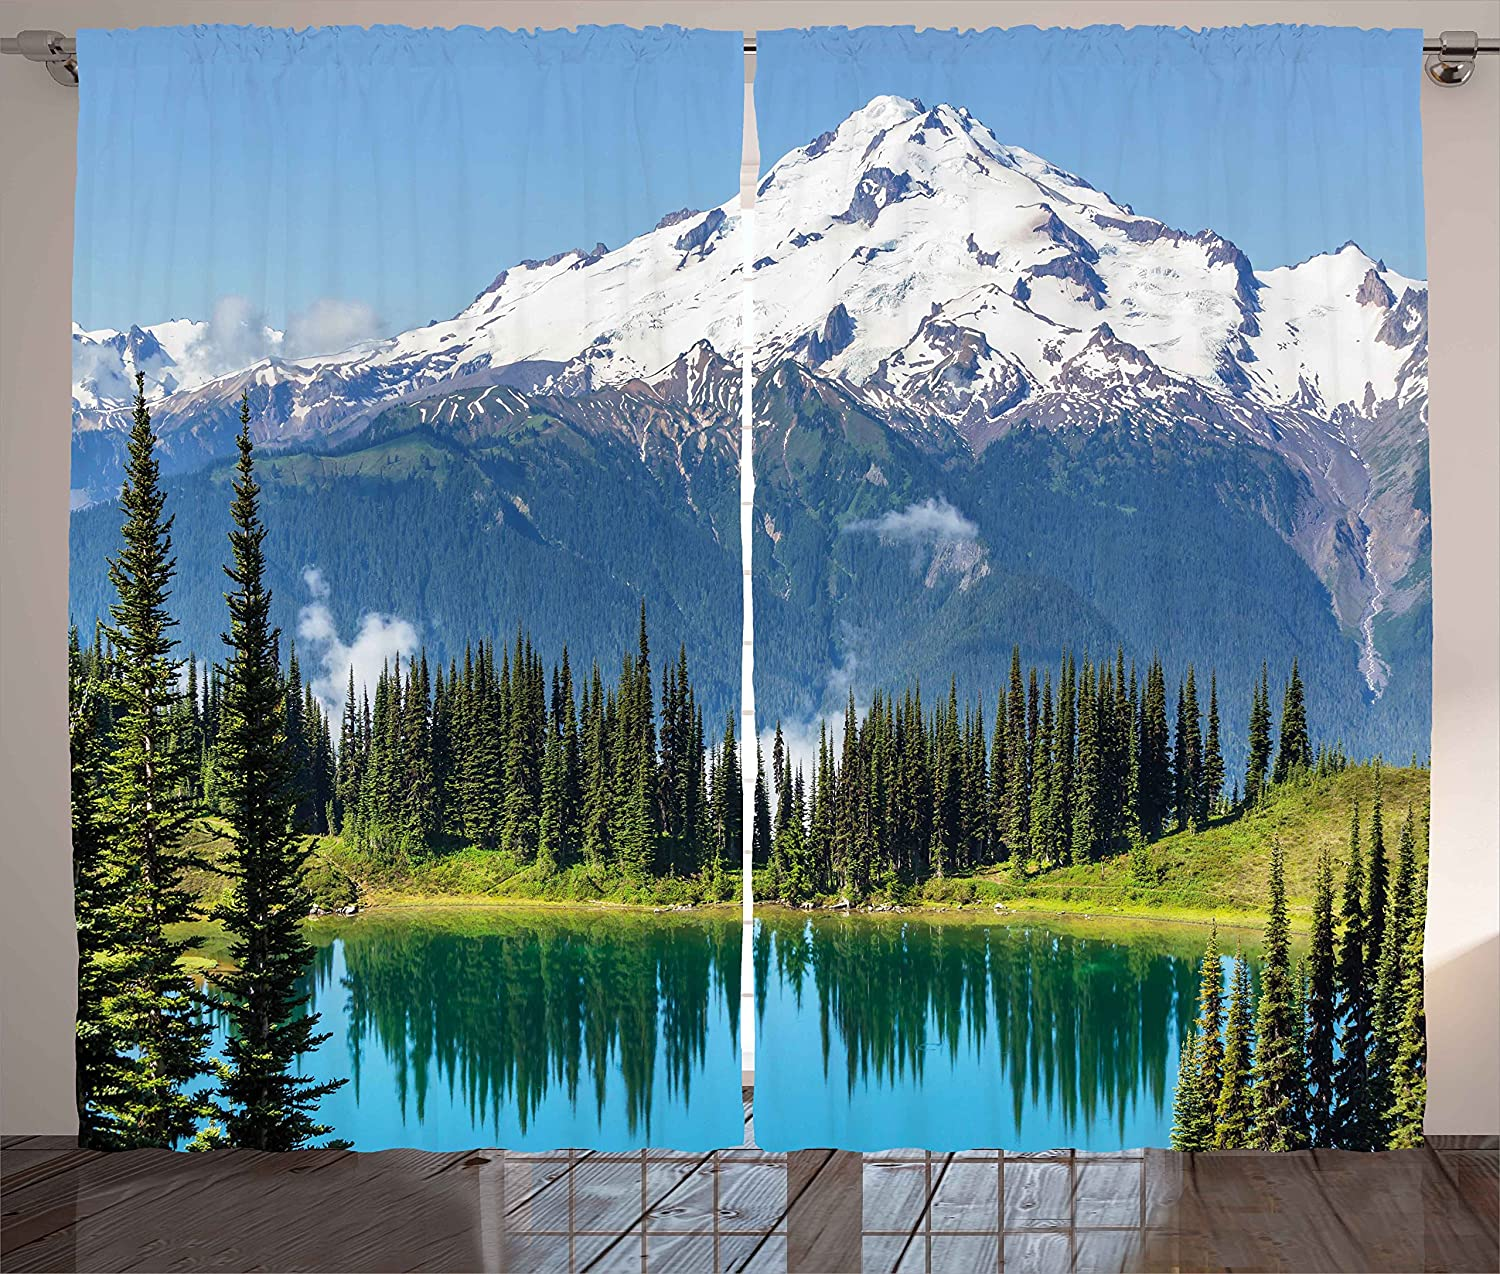 Ambesonne Nature Curtains, Idyllic Crystal Lake Surrounded by Pine Trees and Snowy Mountain Landscape, Living Room Bedroom Window Drapes 2 Panel Set, 108